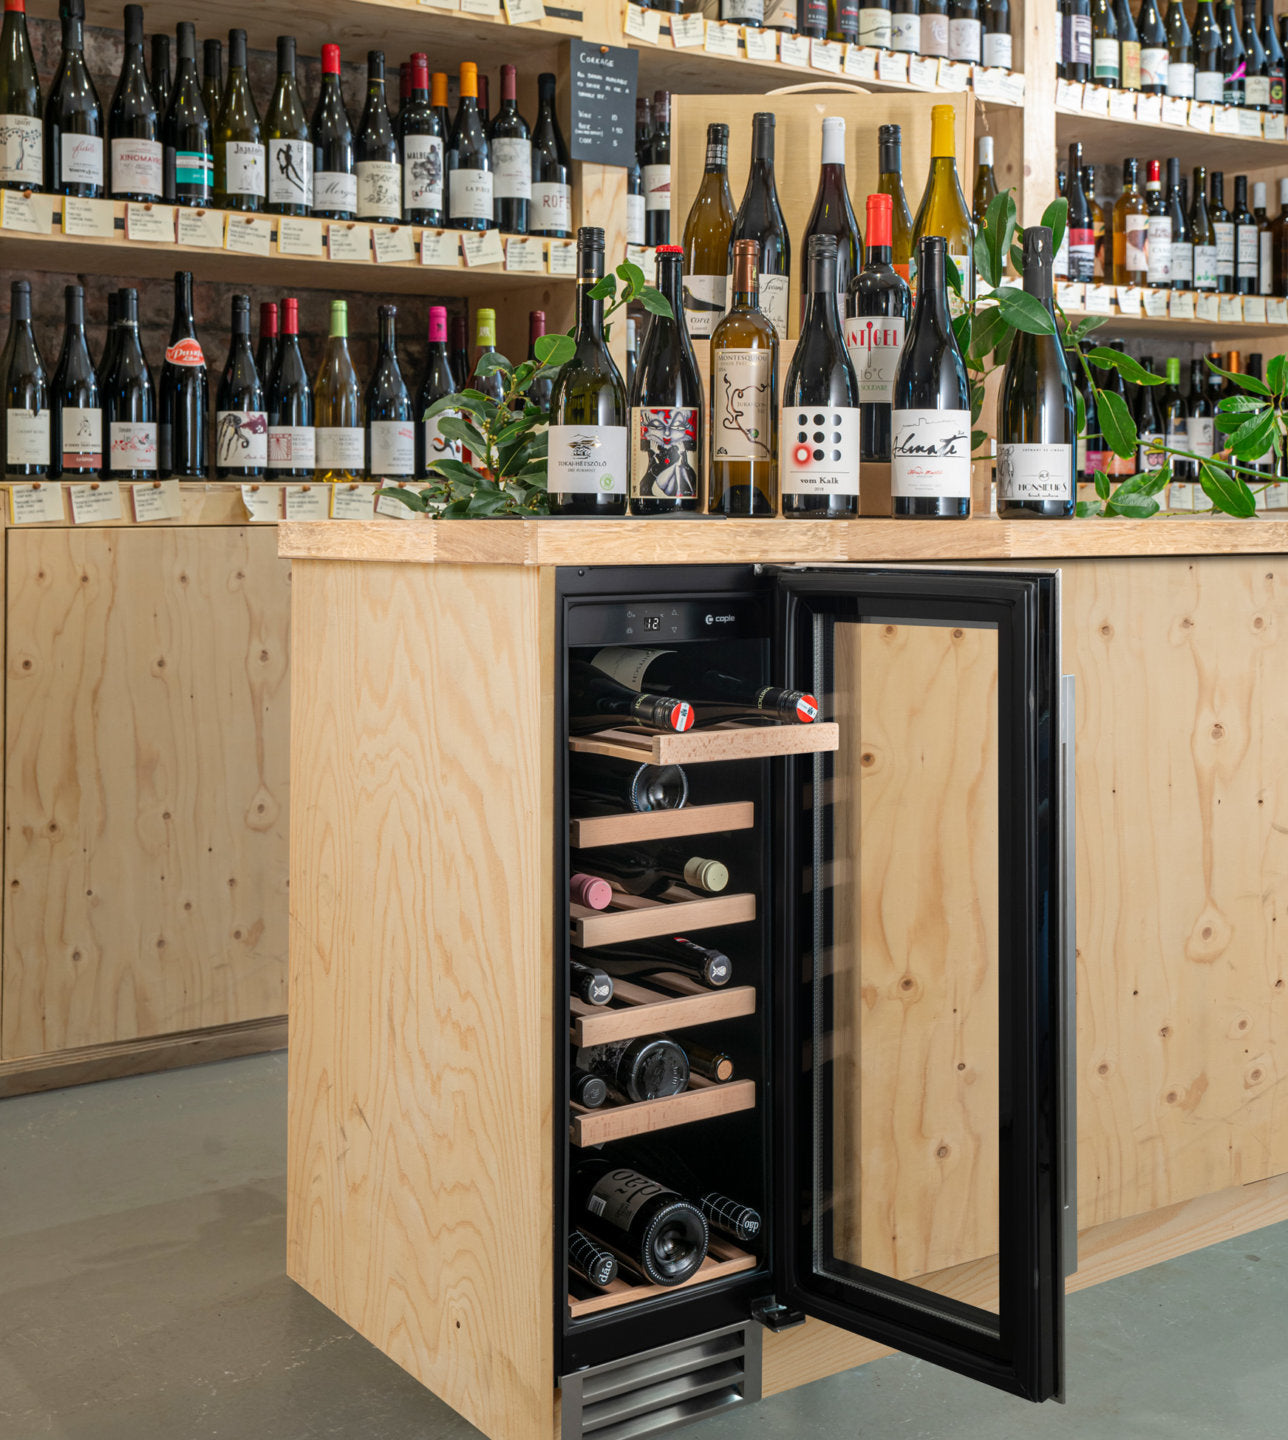 Best wine fridge Ireland